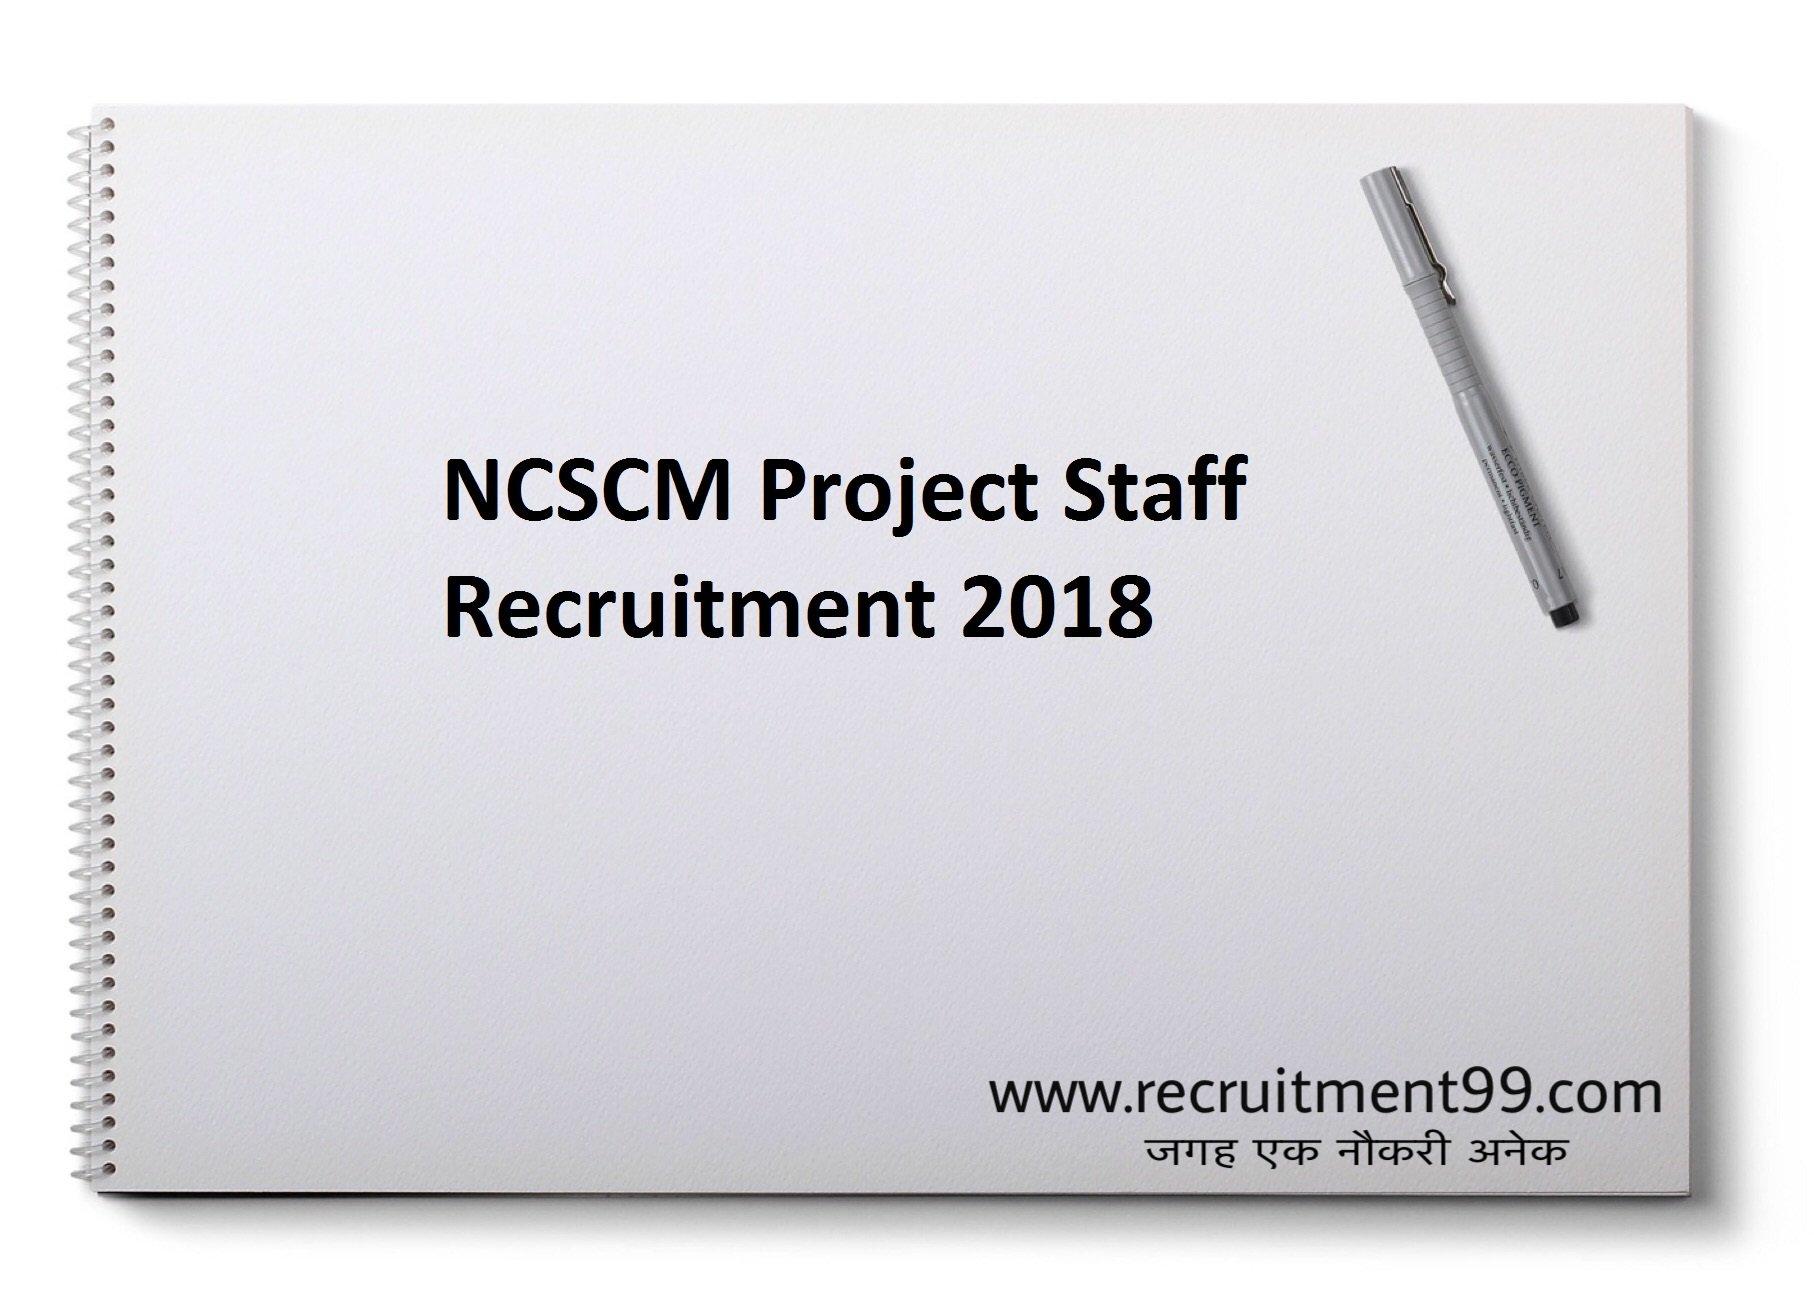 NCSCM Project Staff Recruitment Admit Card Result 2018